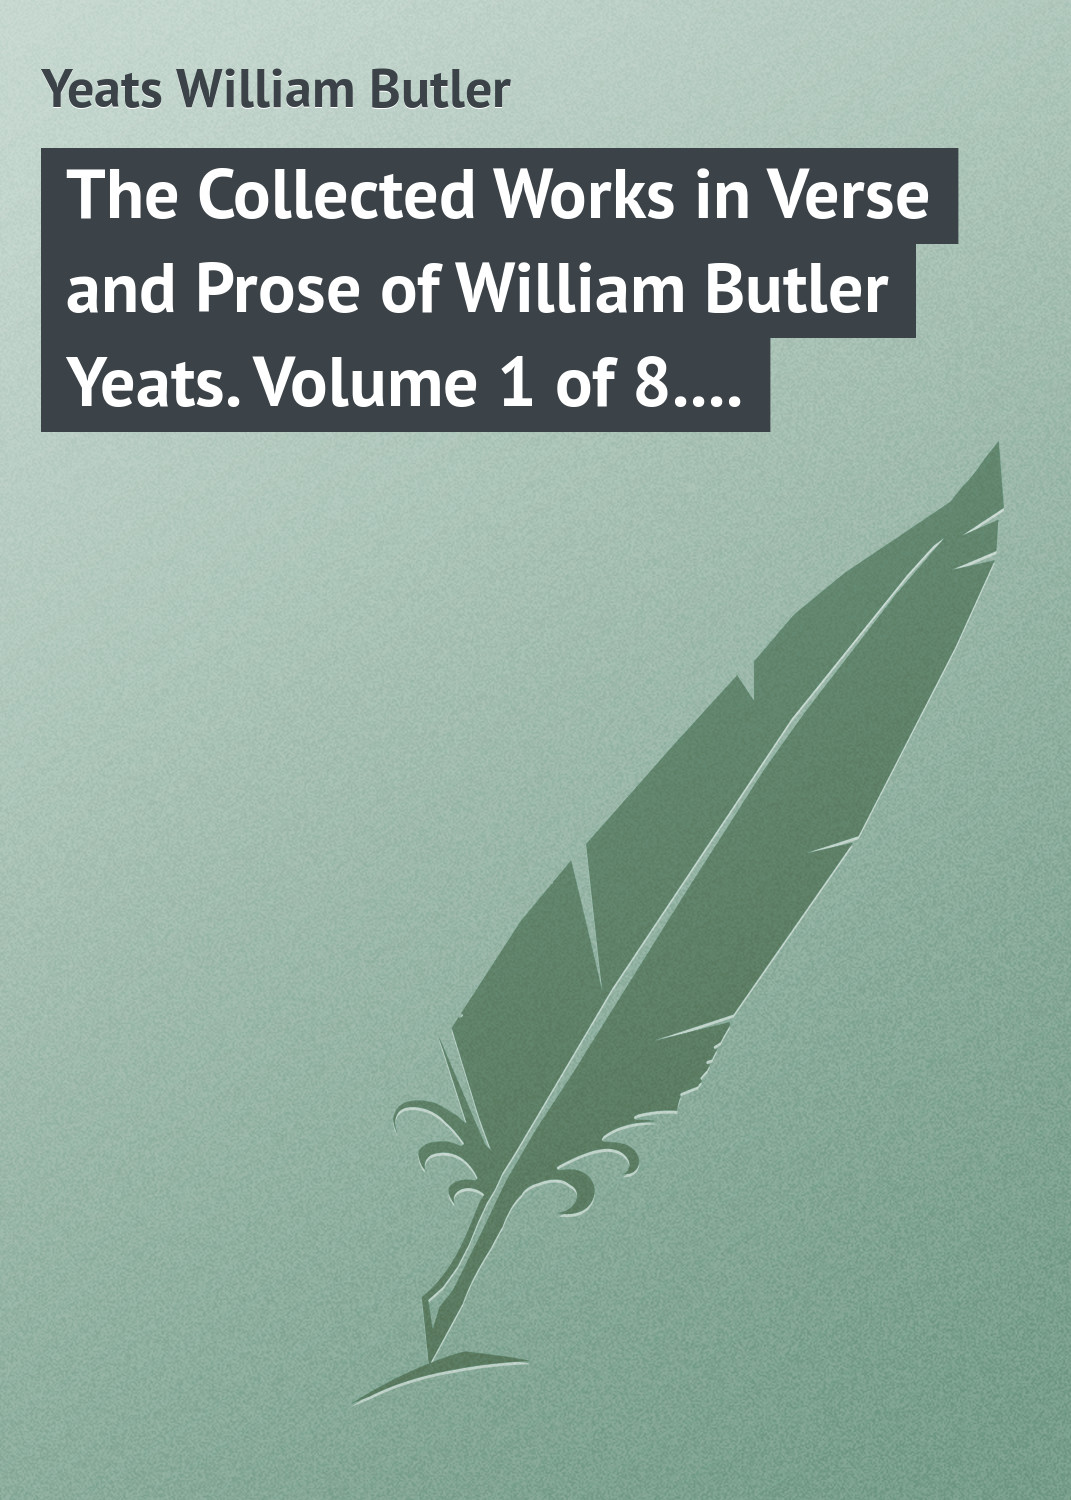 William Butler Yeats The Collected Works in Verse and Prose of William Butler Yeats. Volume 1 of 8. Poems Lyrical and Narrative william butler yeats the tables of the law